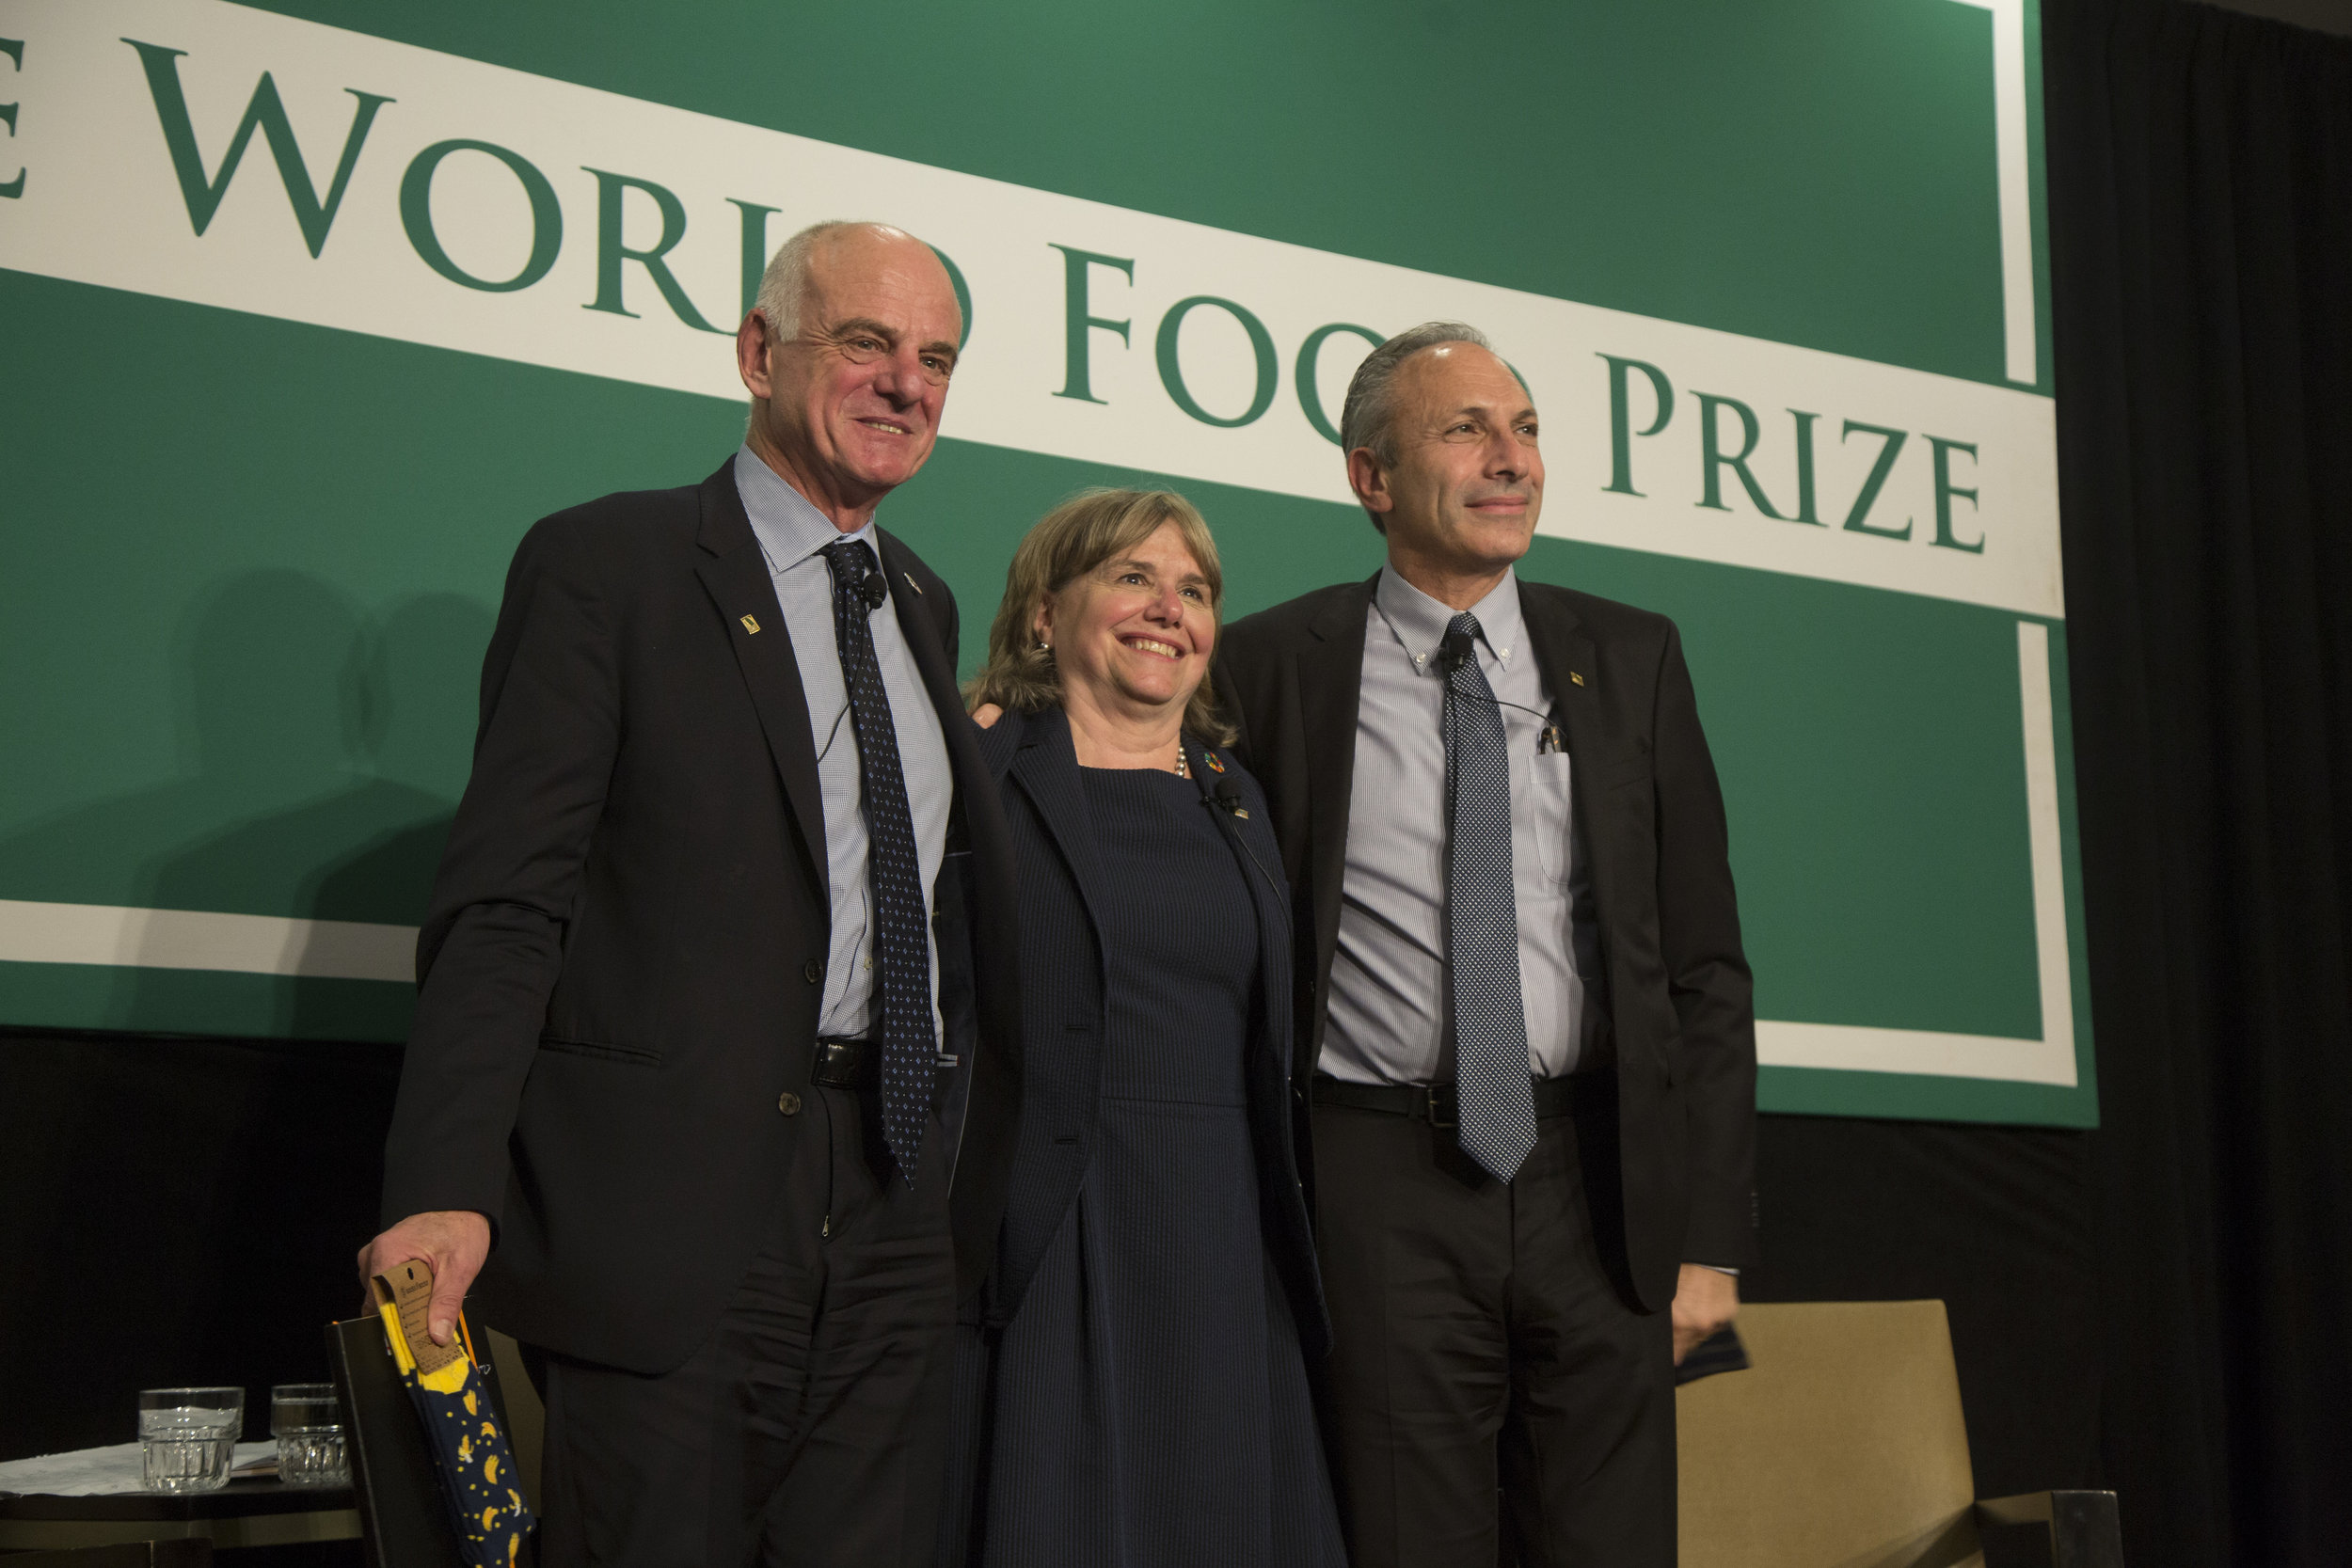 2018 World Food Prize Laureates, Dr. David Nabarro, Dr. Lawrence Haddad at their Laureate Panel Moderated by Catherine Bertini